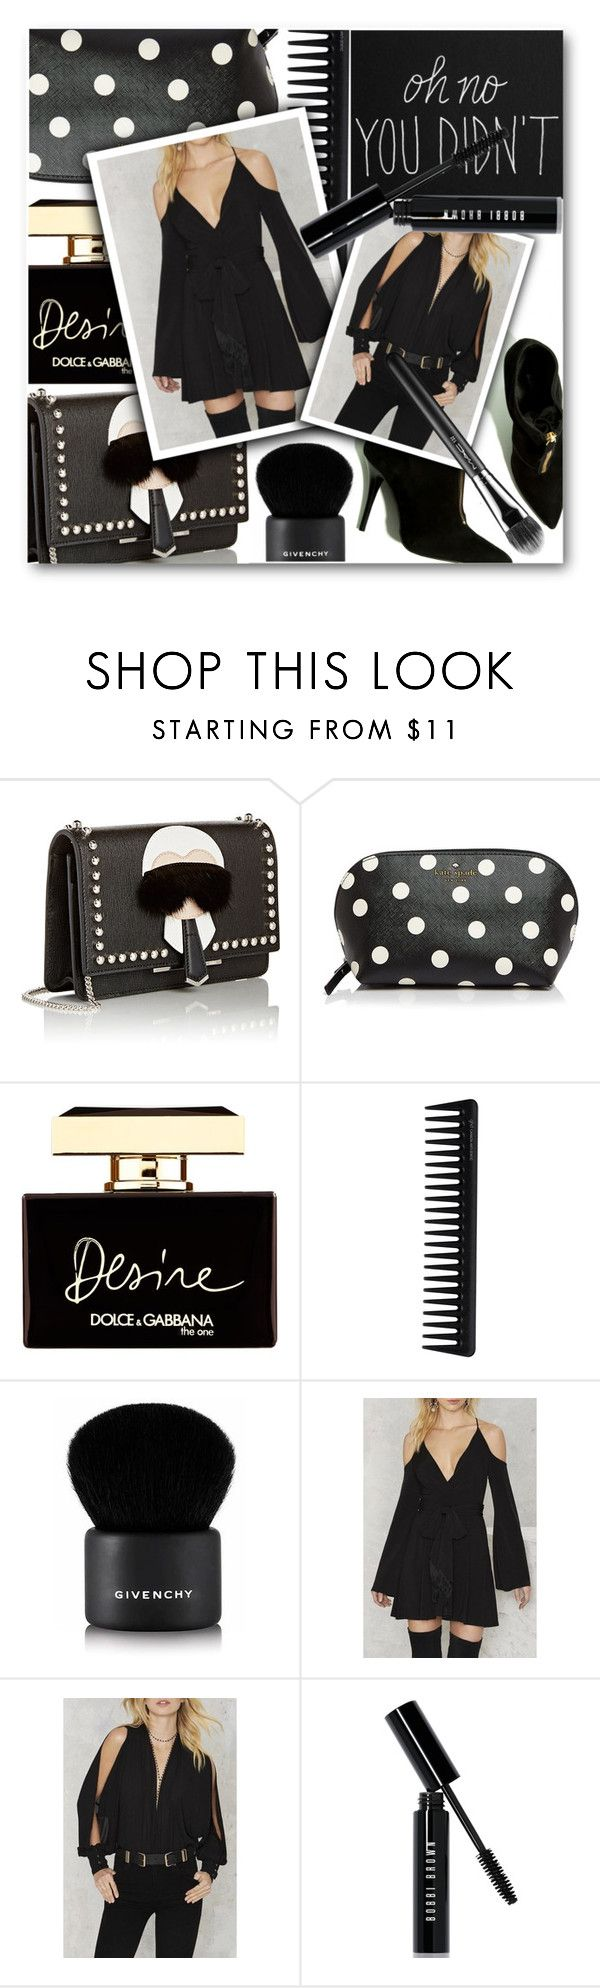 """""""Slay."""" by eclectic-chic ❤ liked on Polyvore featuring Fendi, Kate Spade, Dolce&Gabbana, GHD, Givenchy, Bobbi Brown Cosmetics, MAC Cosmetics, allblack, beautifulhalo and bhalo"""